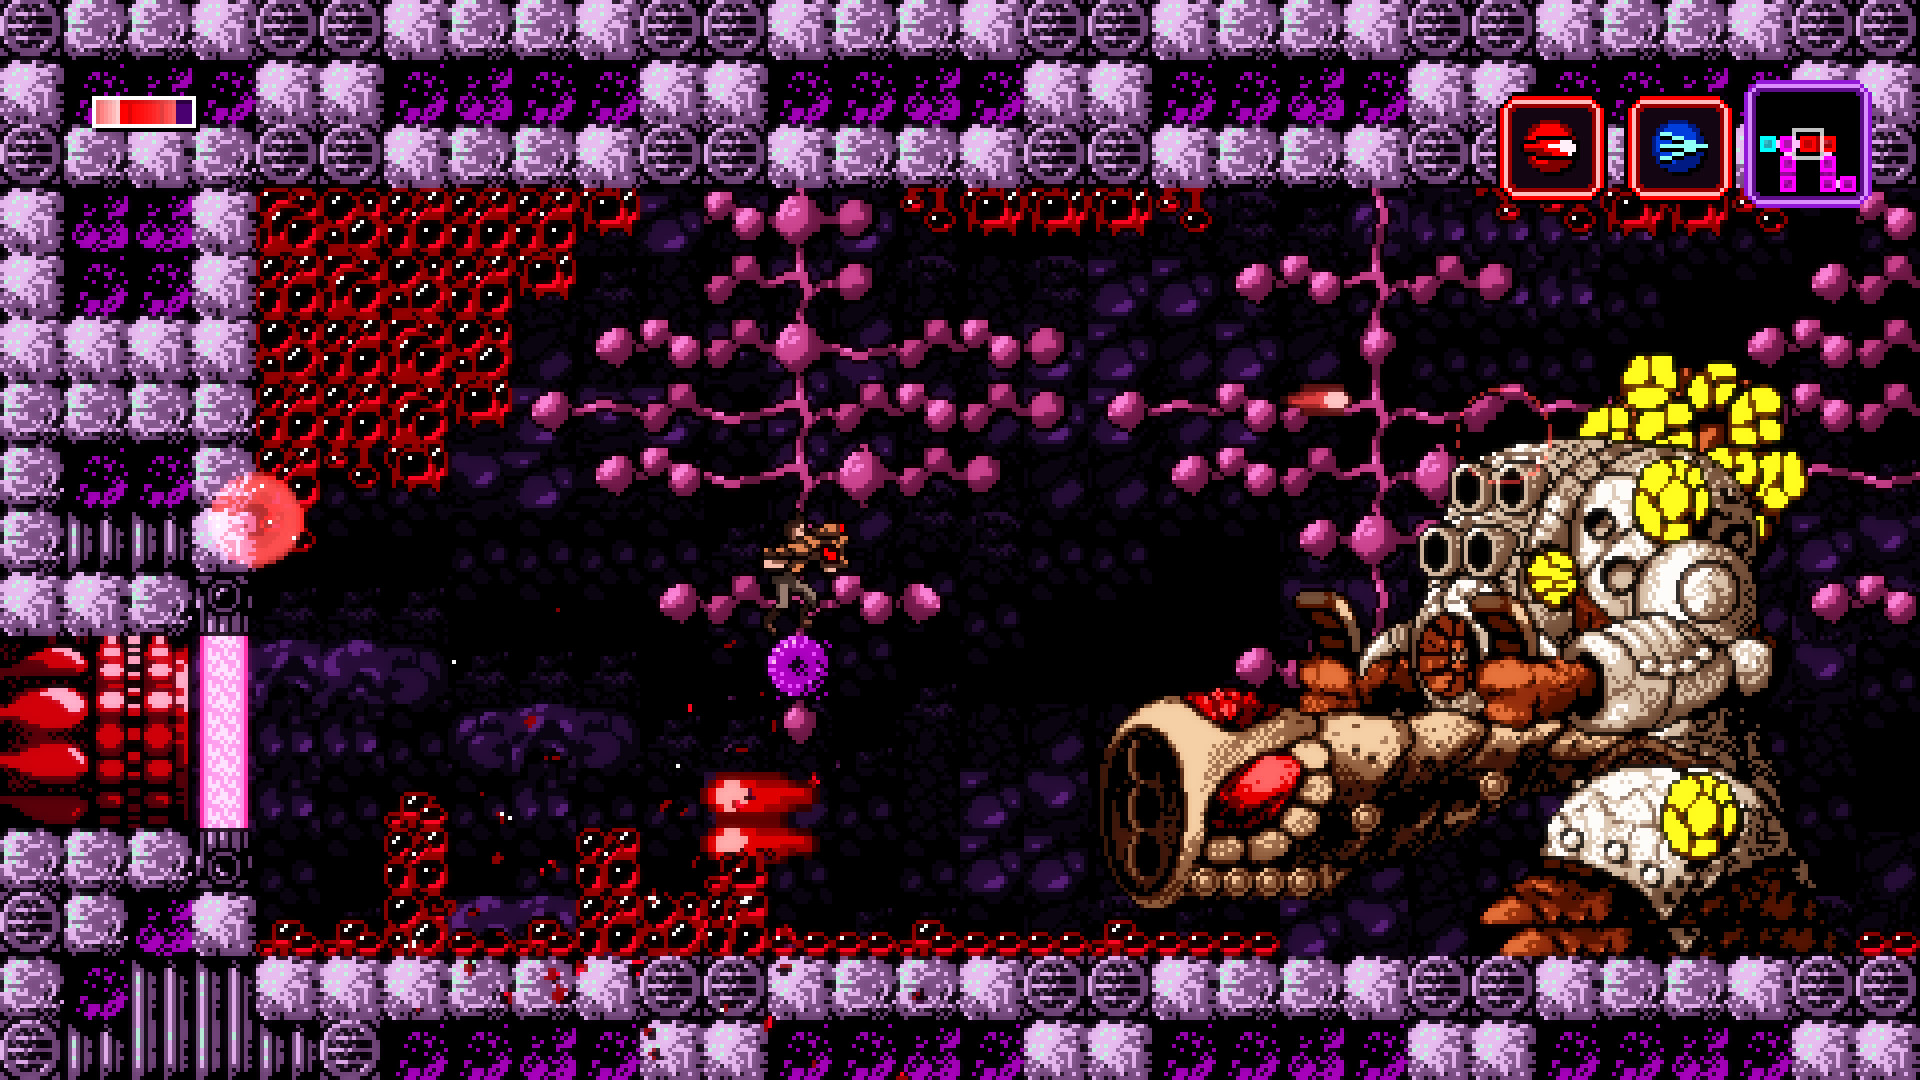 Axiom Verge is currently for free on Epic's Store